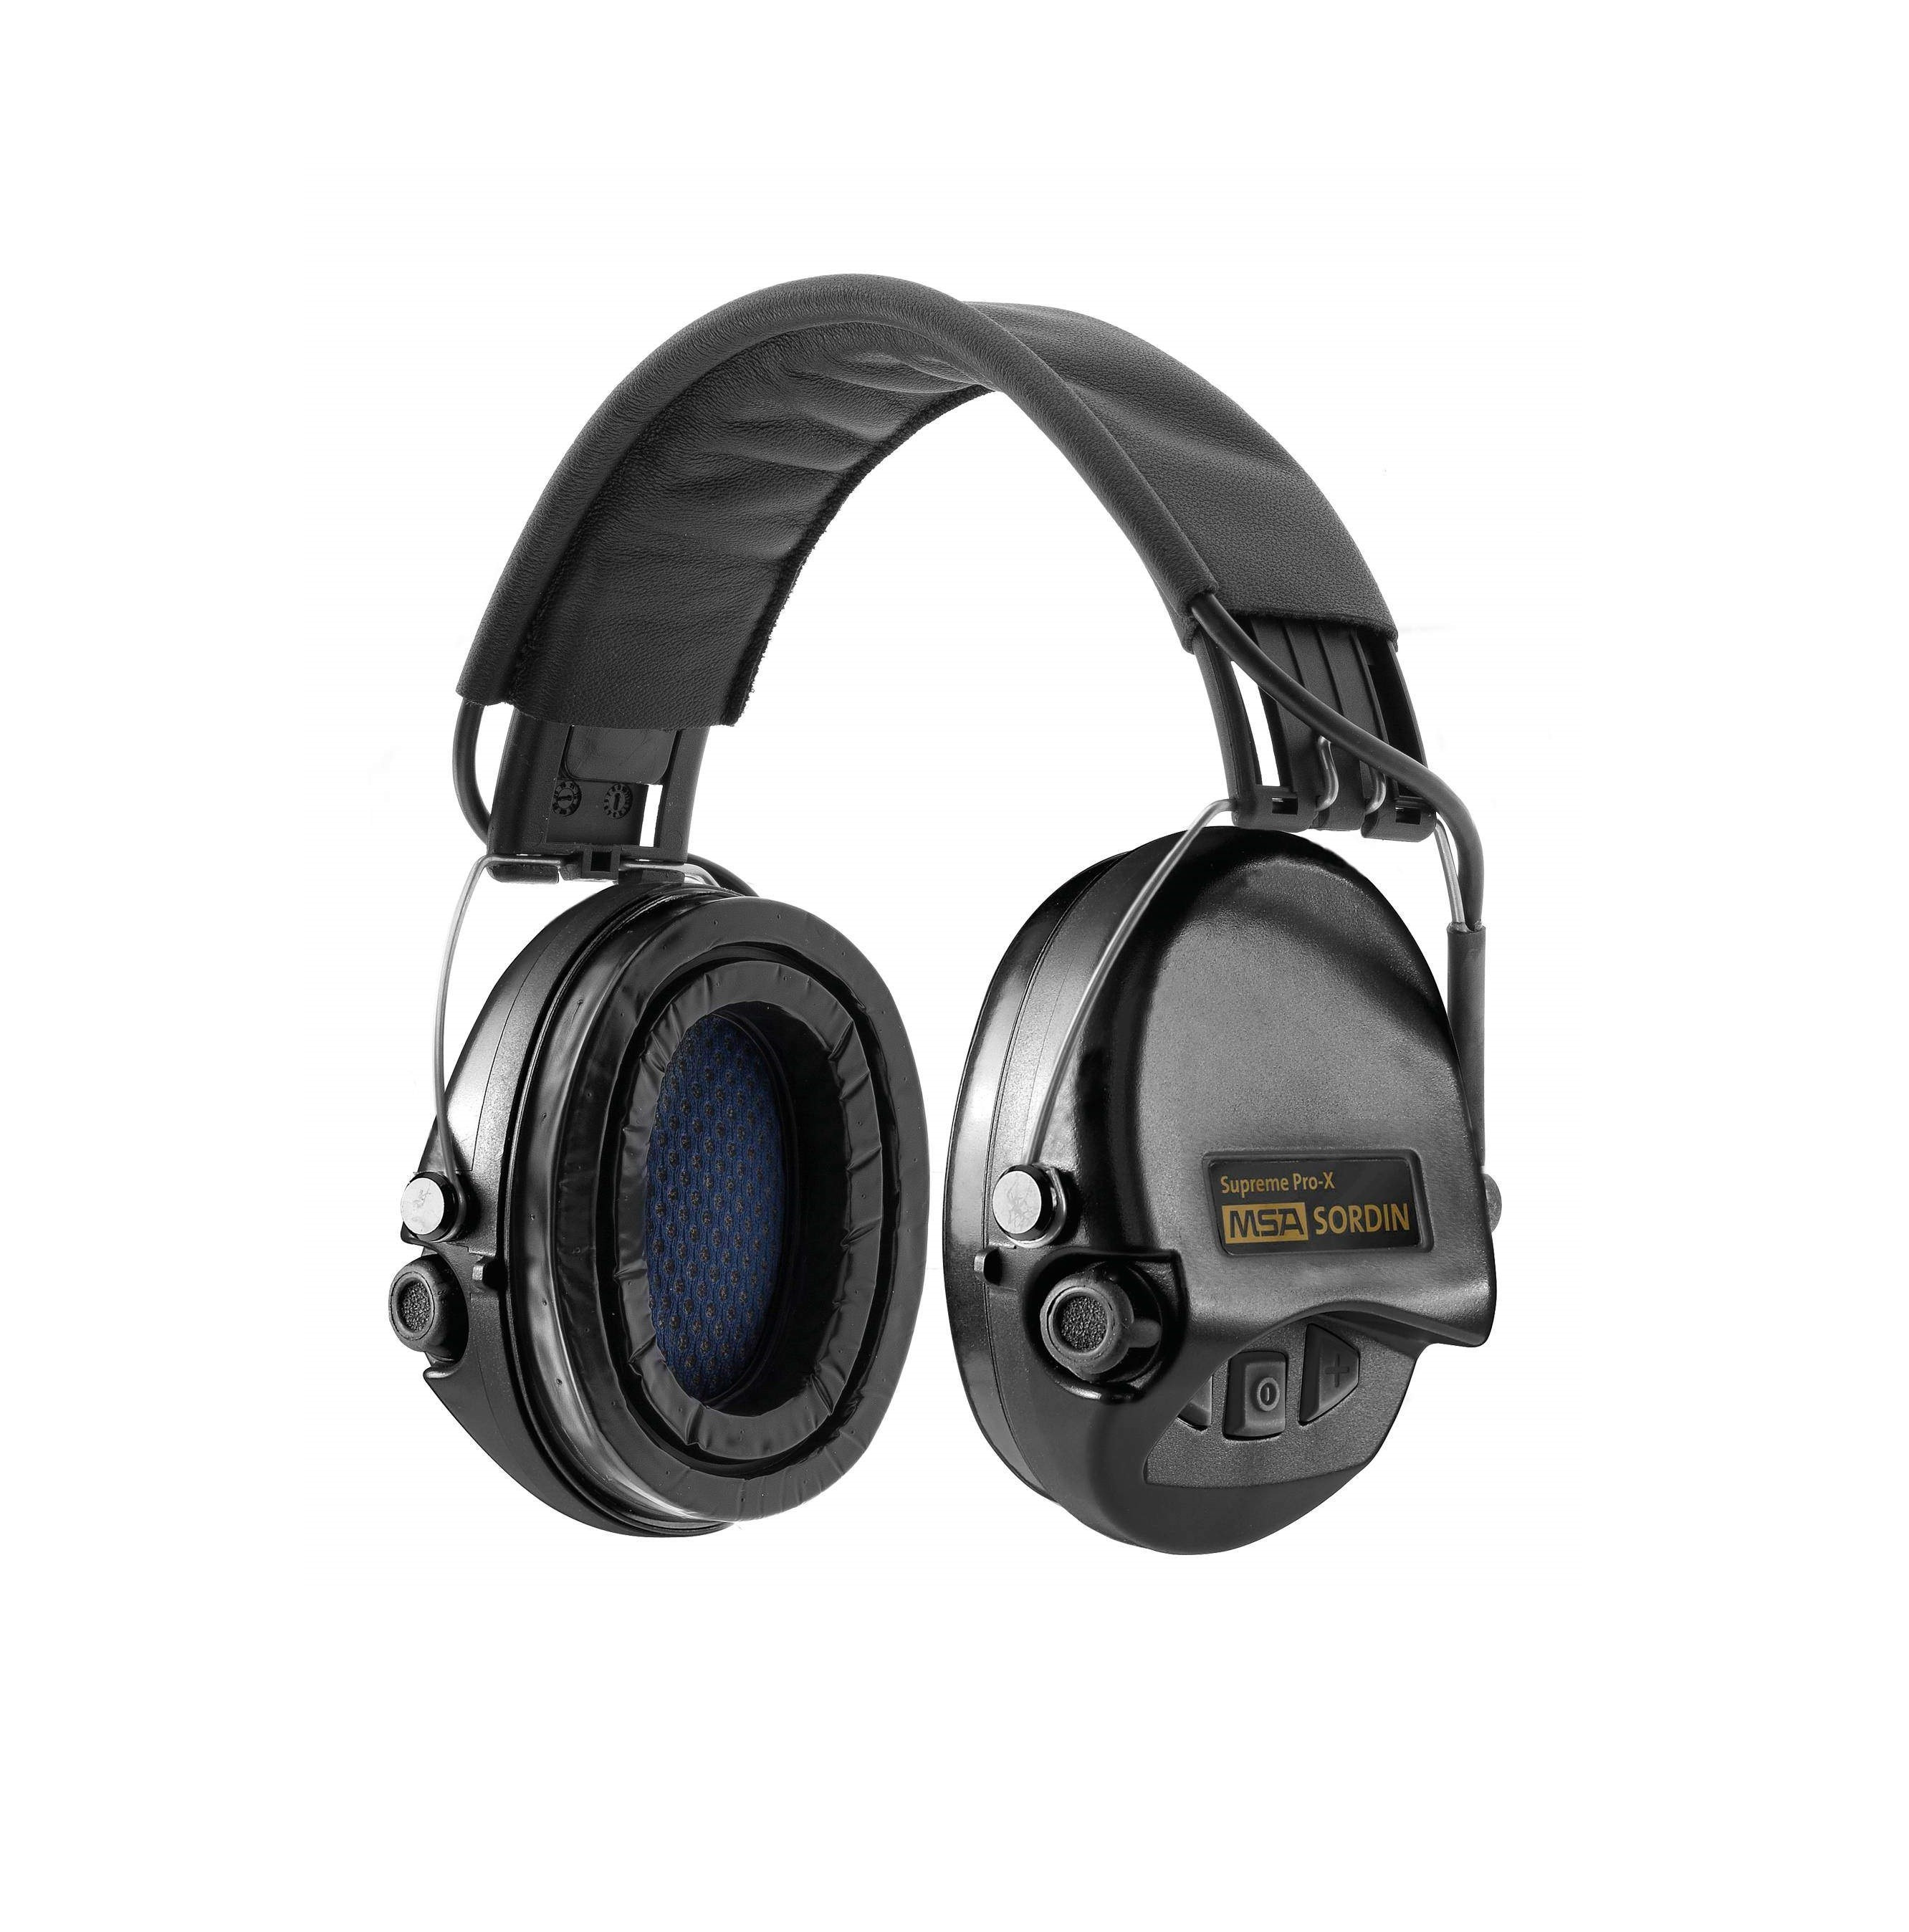 Equipement Pack Casque Supreme Pro X & Talkie Walkie MSA - 2